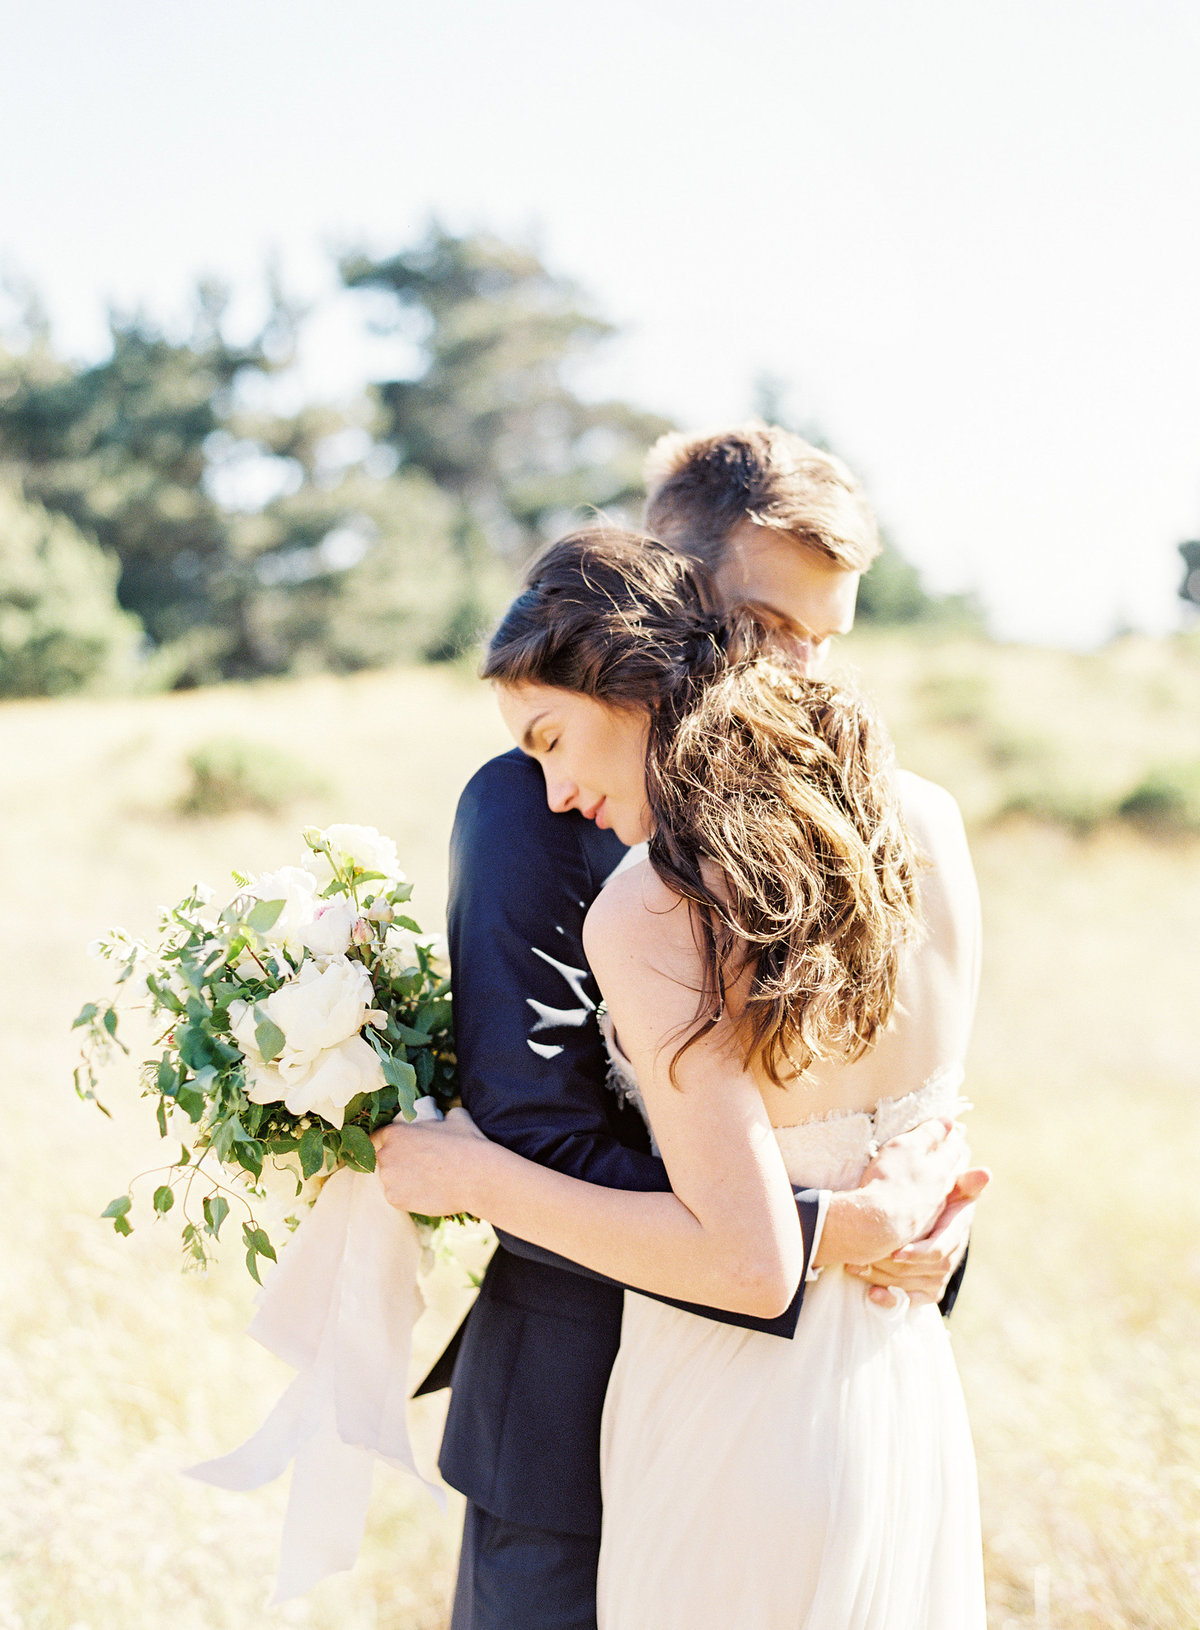 elk+beachside+wedding+editorial+by+lauren+peele+photography82